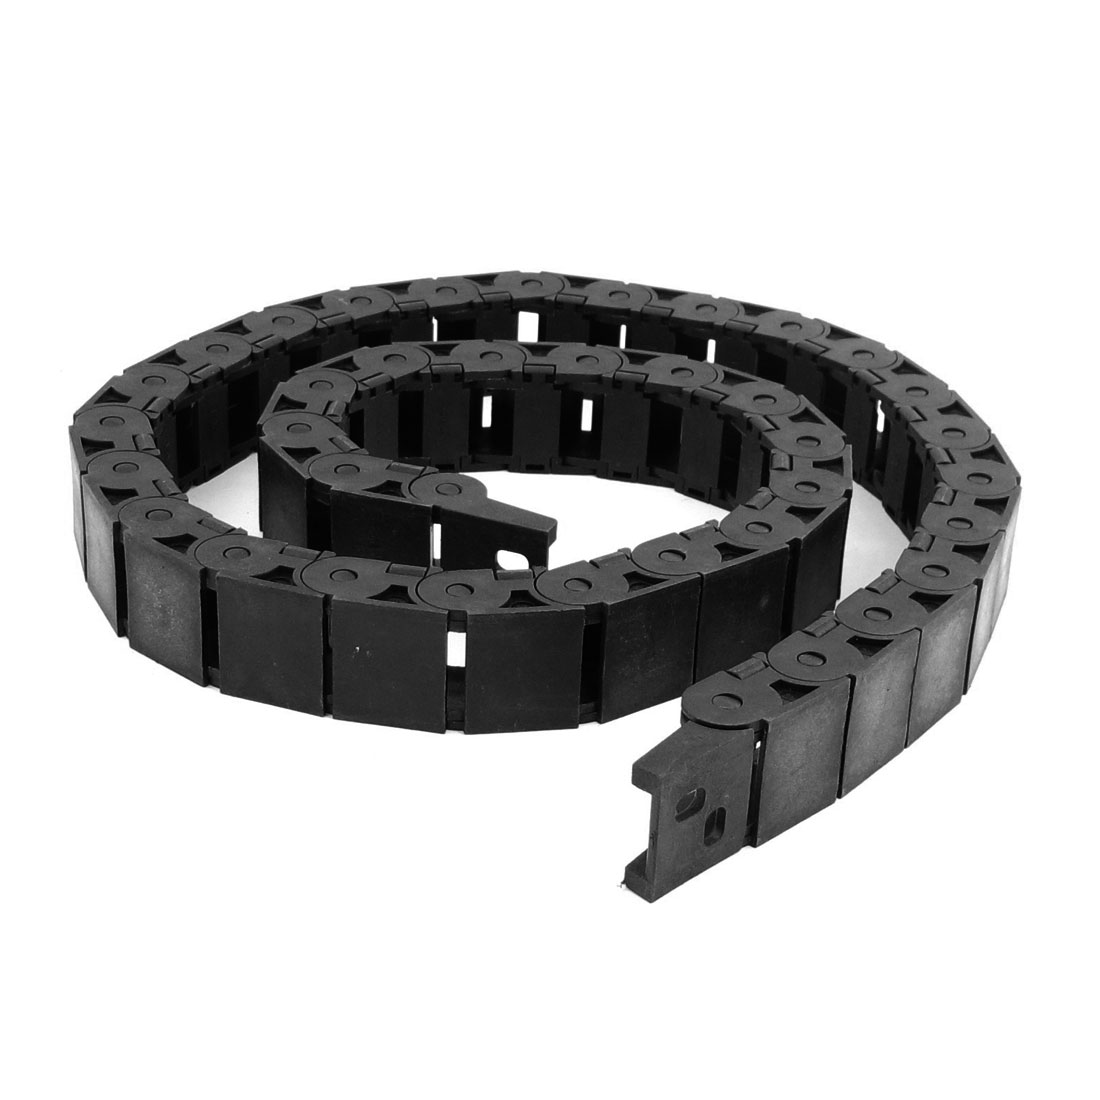 1.06M Plastic Open Type Towline Cable Carrier Drag Chain 15mm x 20mm